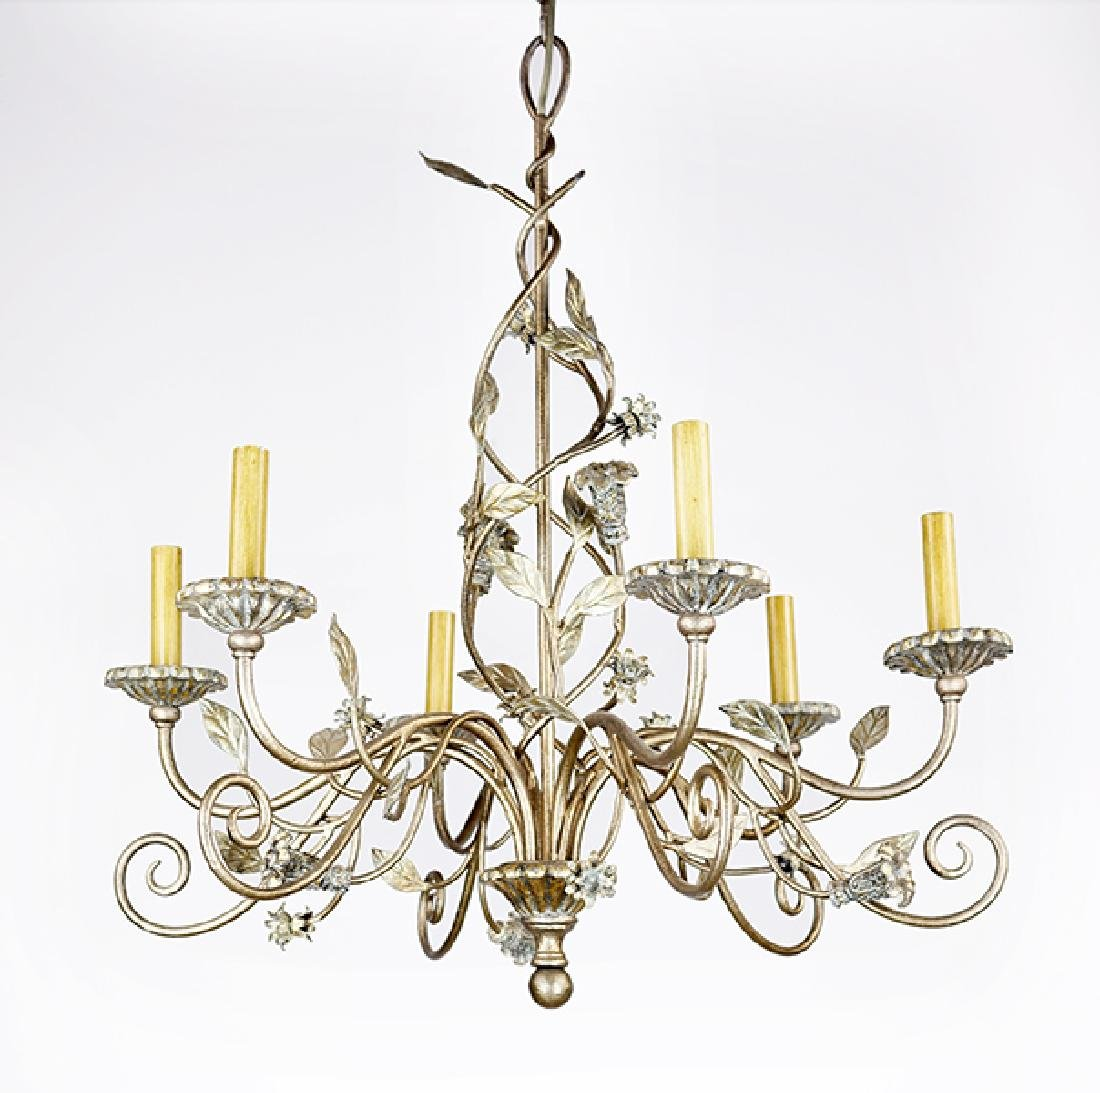 A Six-Light Chandelier.